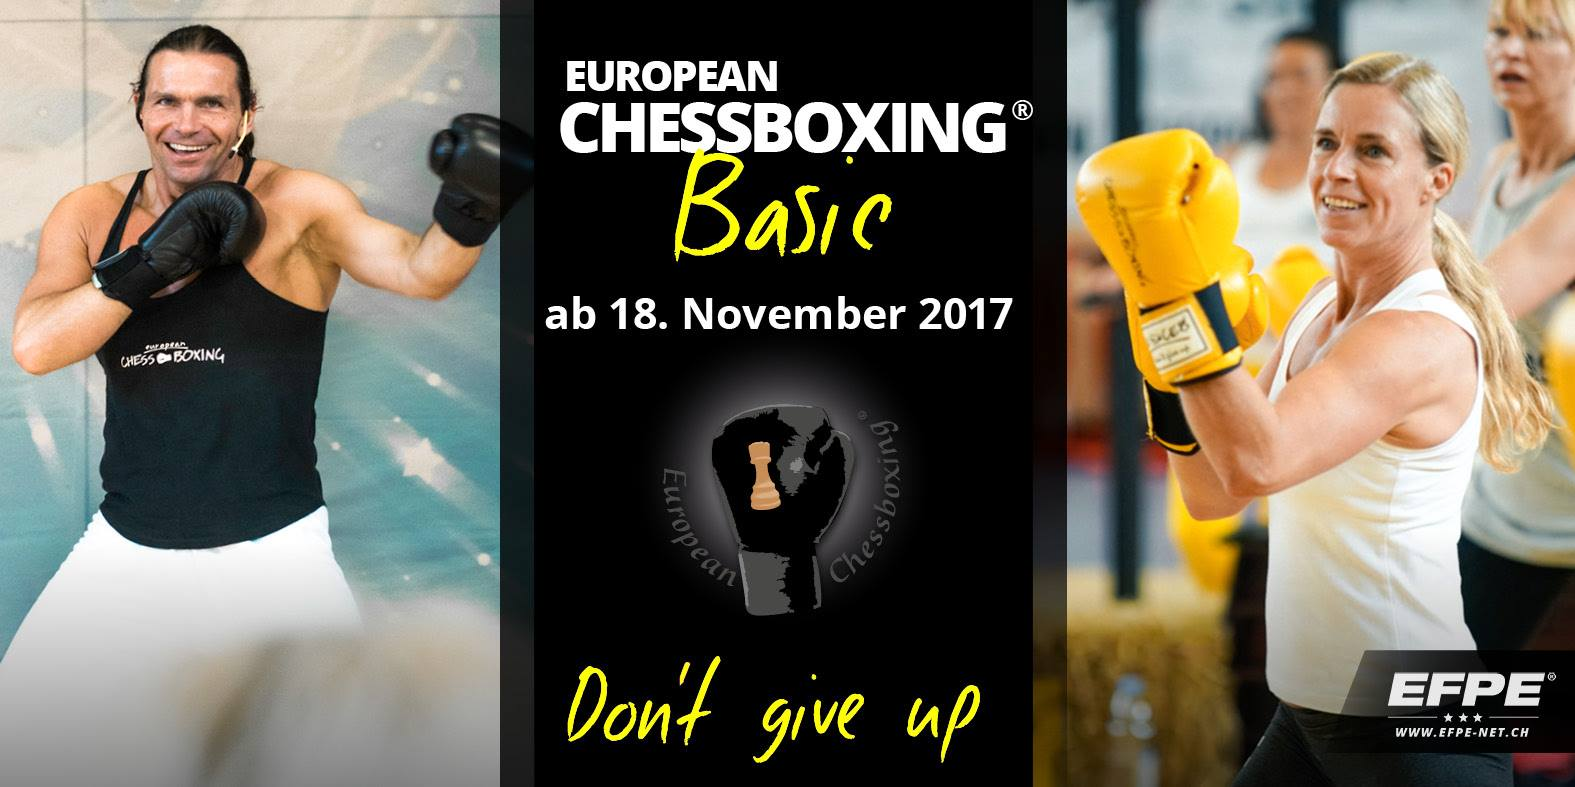 Euceb_Basic2017 EUROPEAN CHESSBOXING® First Edition - EFPE ®